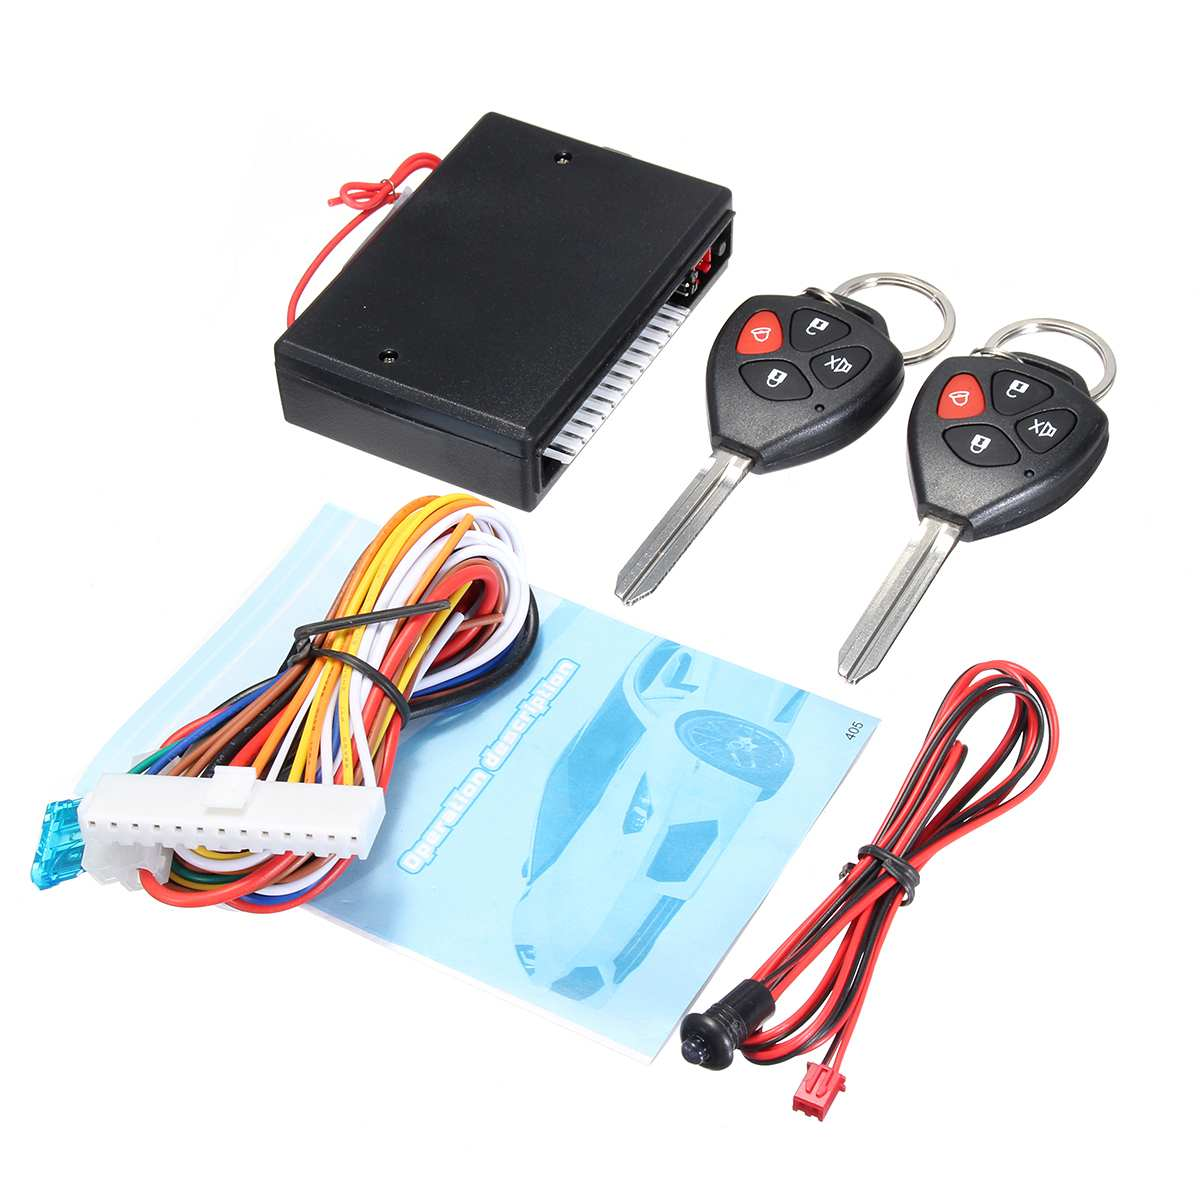 Car Remote Control Central Kit Door Locking Keyless Entry System Alarm Vehicle Entry System CH054-009 For Toyota